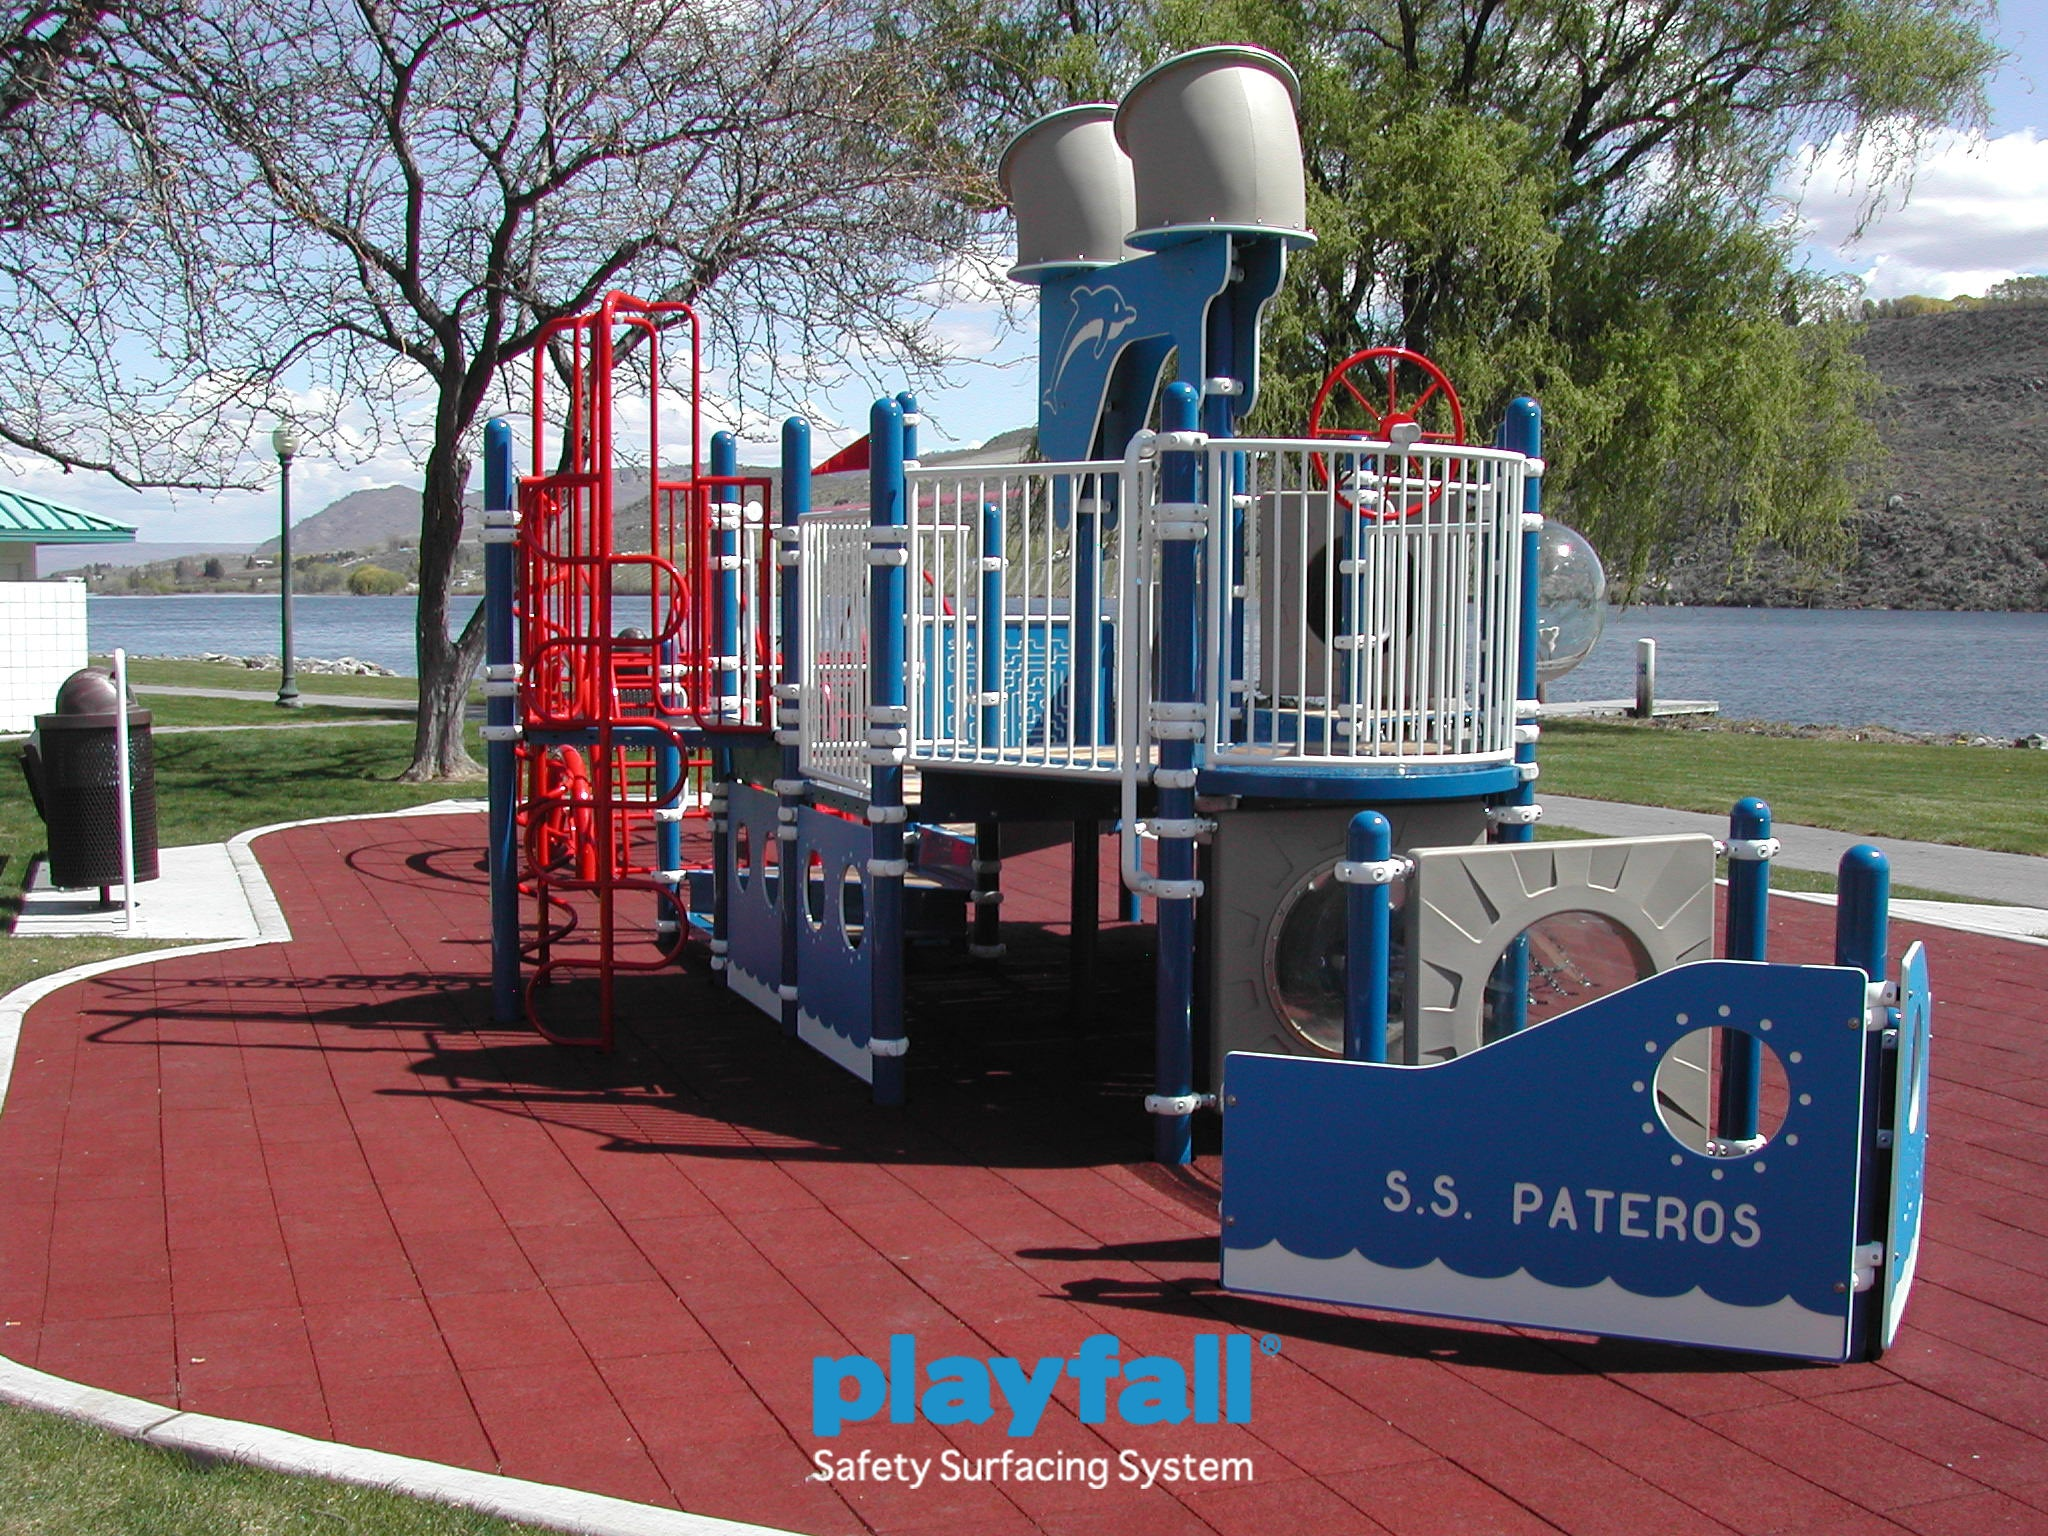 PlayFALL rubber tiles installed beneath a jungle gym for added safety protection.